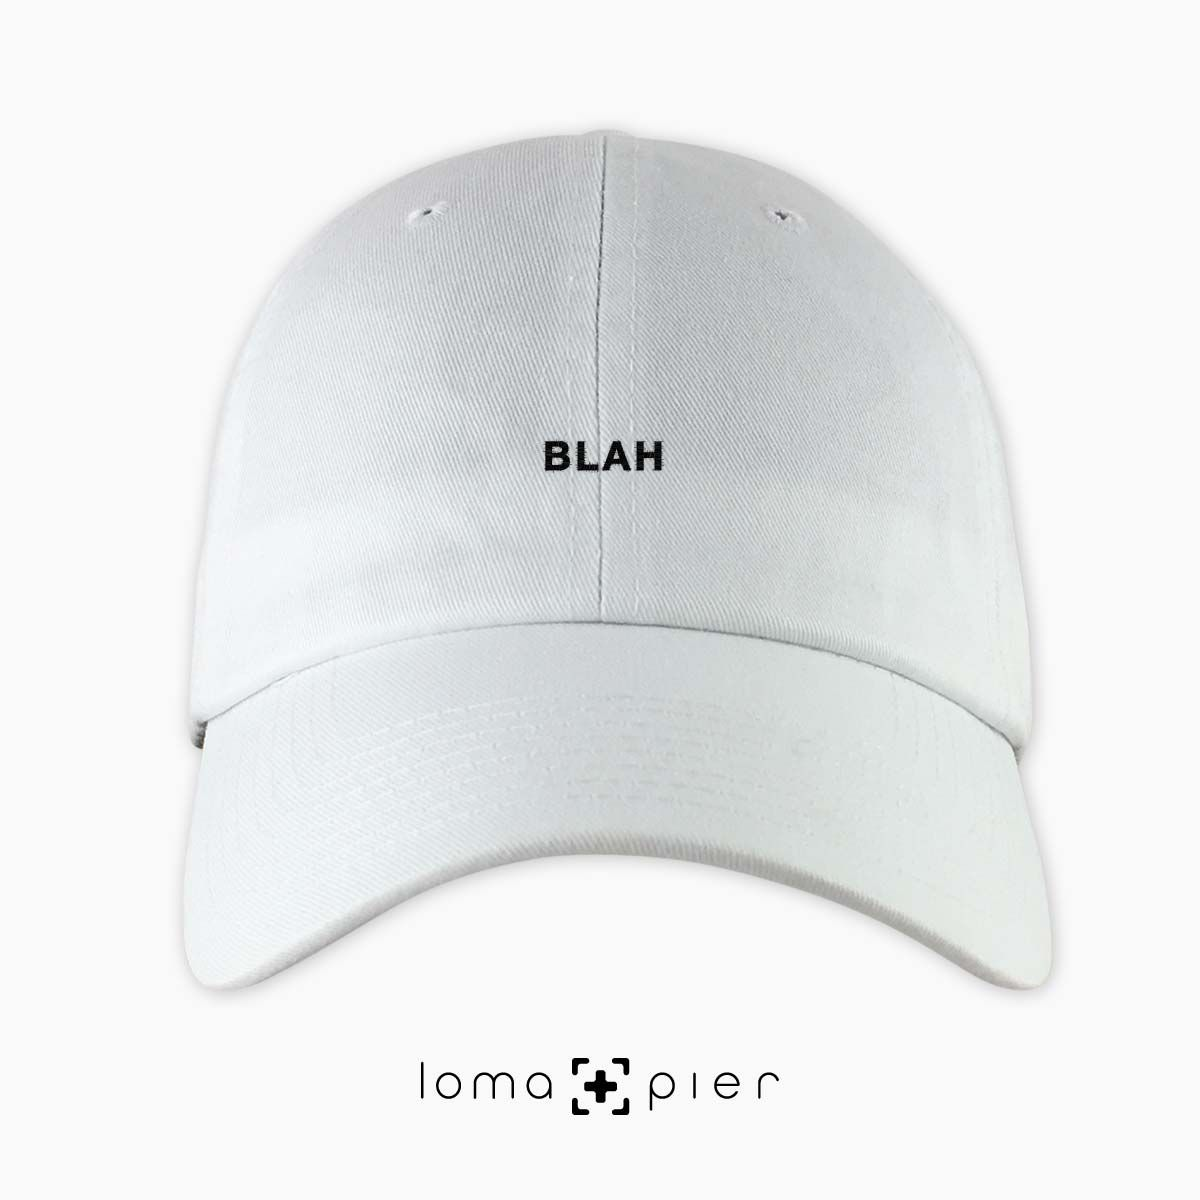 0d4ad574afb BLAH typography embroidered on a white unstructured dad hat with black  thread by loma+pier hat store made in the USA. BLAH dad hat is 100% cotton  ...